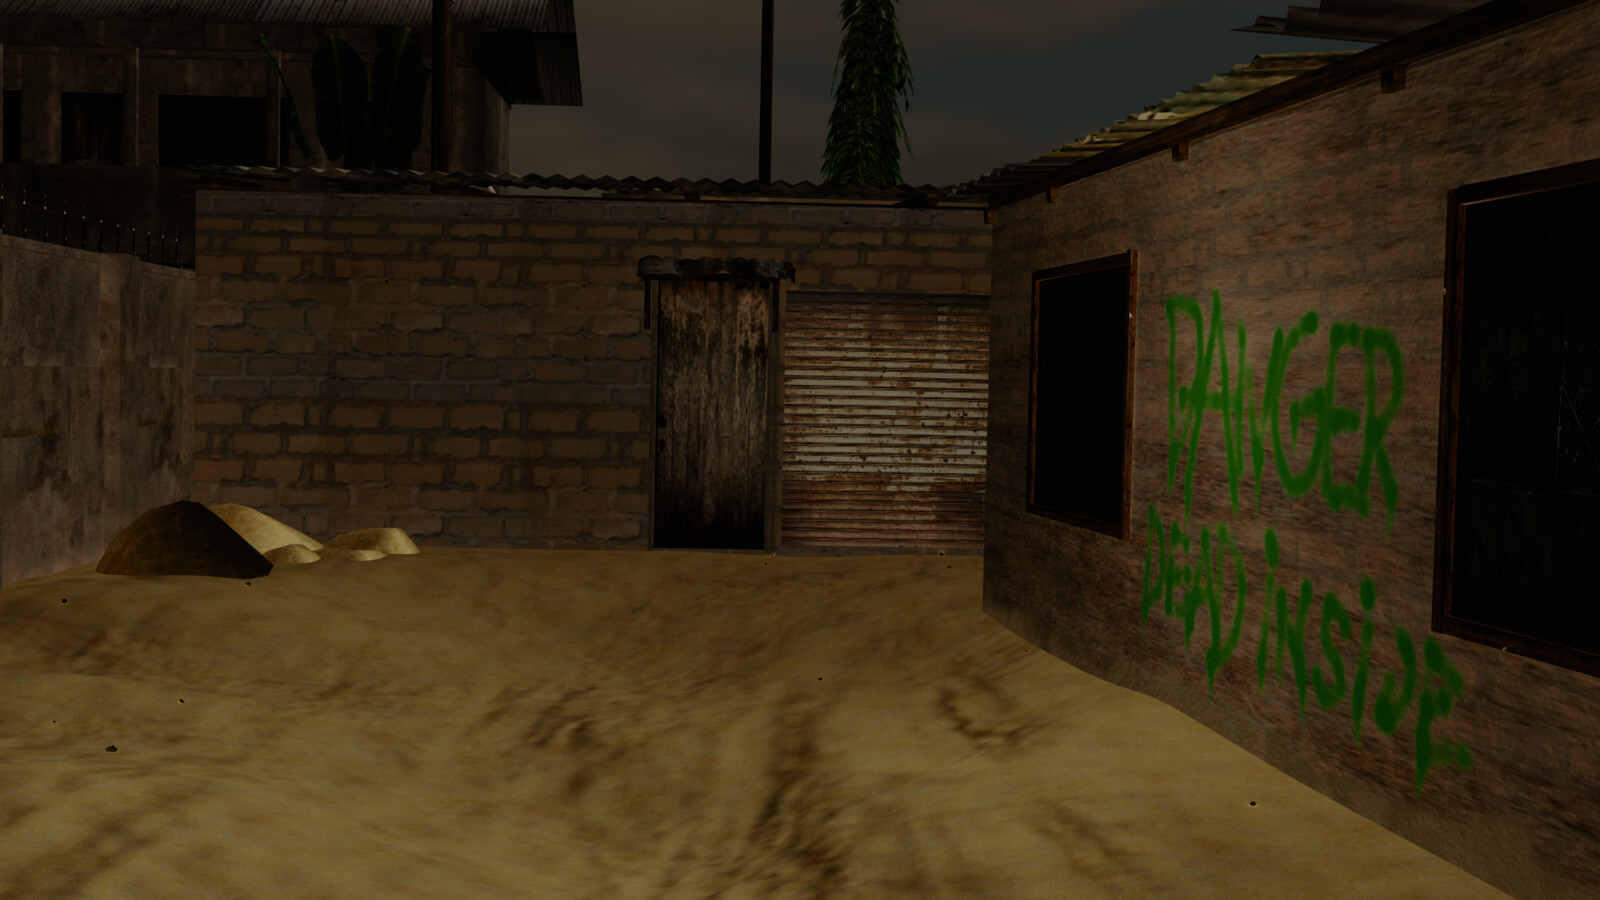 Test render of the previous environment.